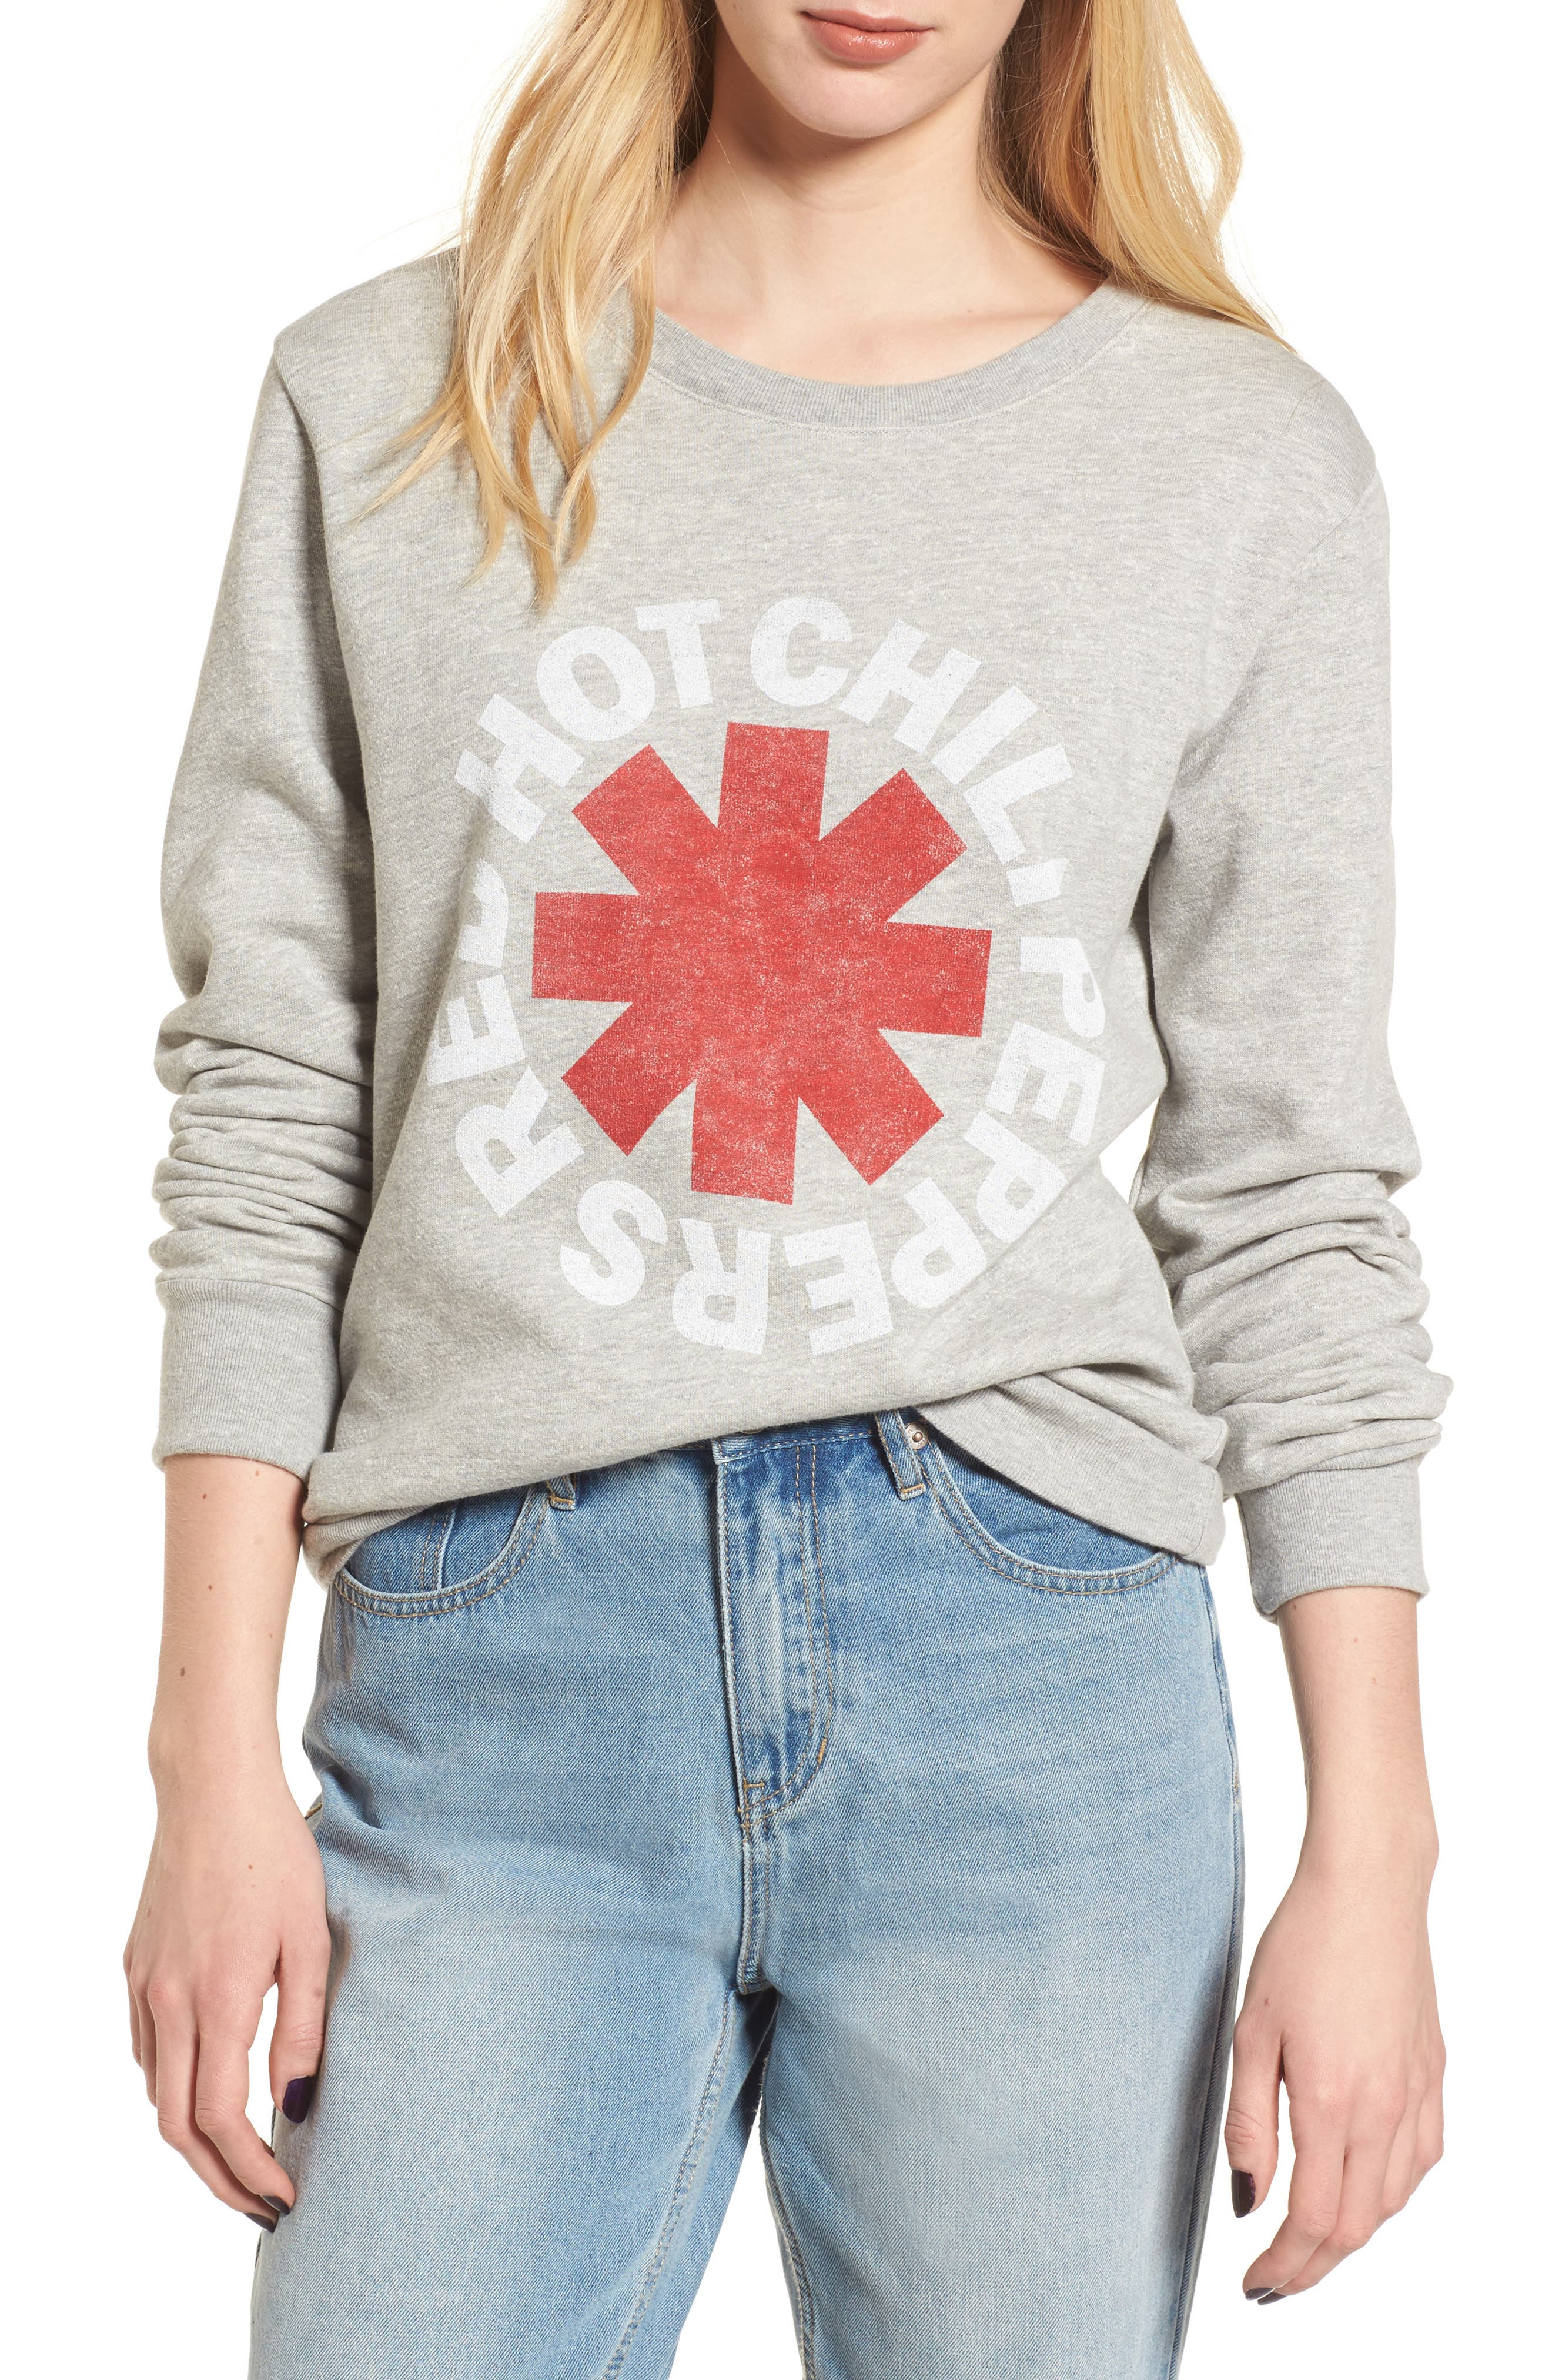 Red Hot Chili Peppers Sweatshirt,                         Main,                         color, Heather Grey